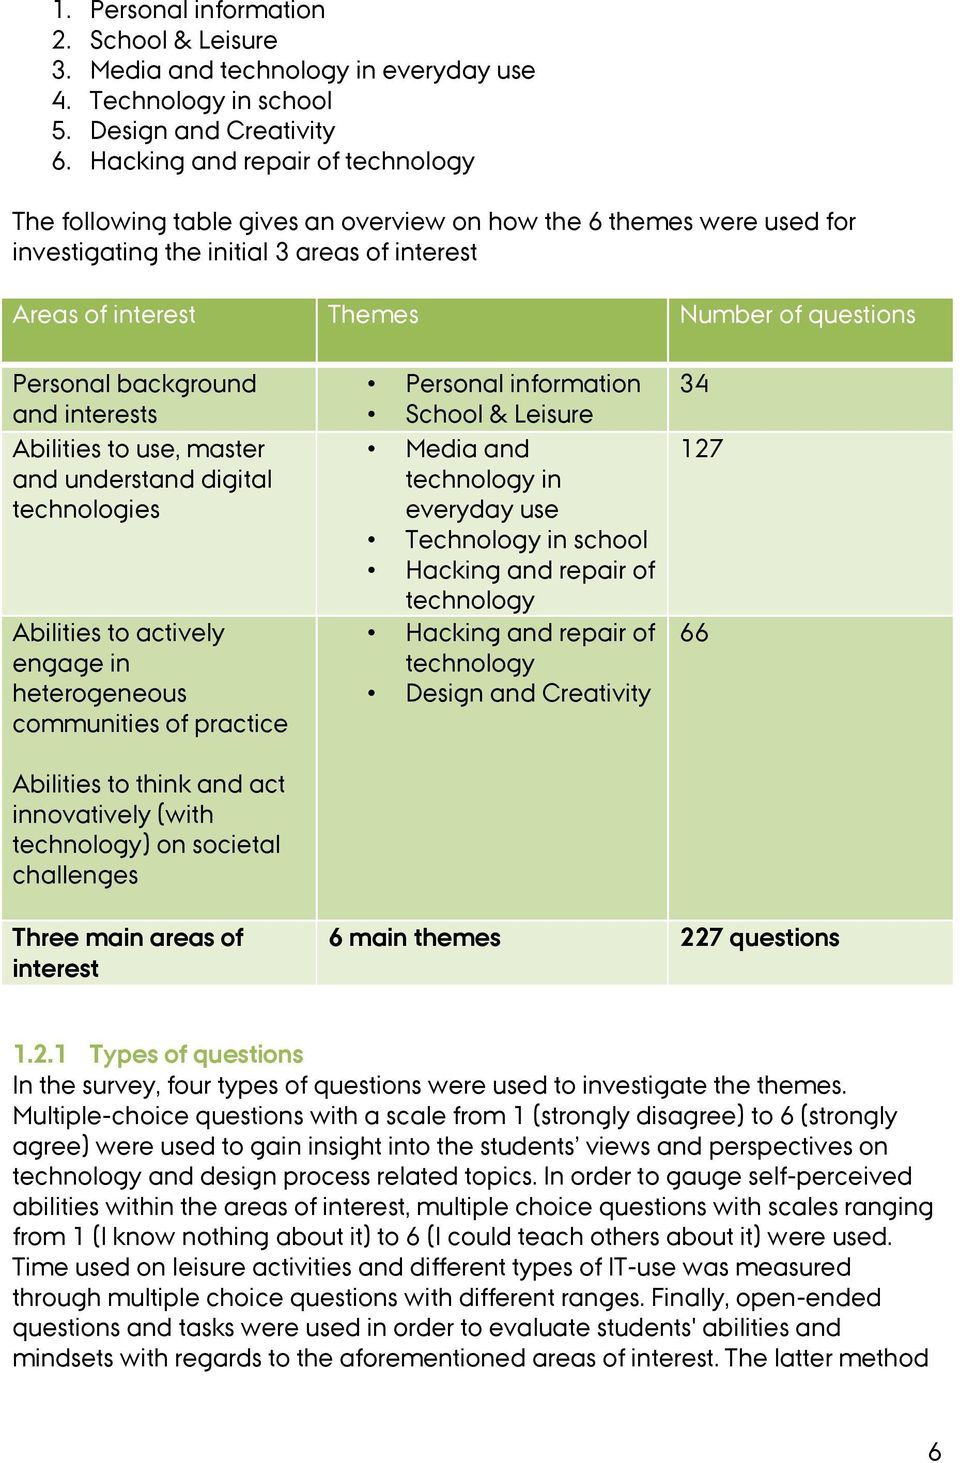 Personal background and interests Abilities to use, master and understand digital technologies Abilities to actively engage in heterogeneous communities of practice Abilities to think and act